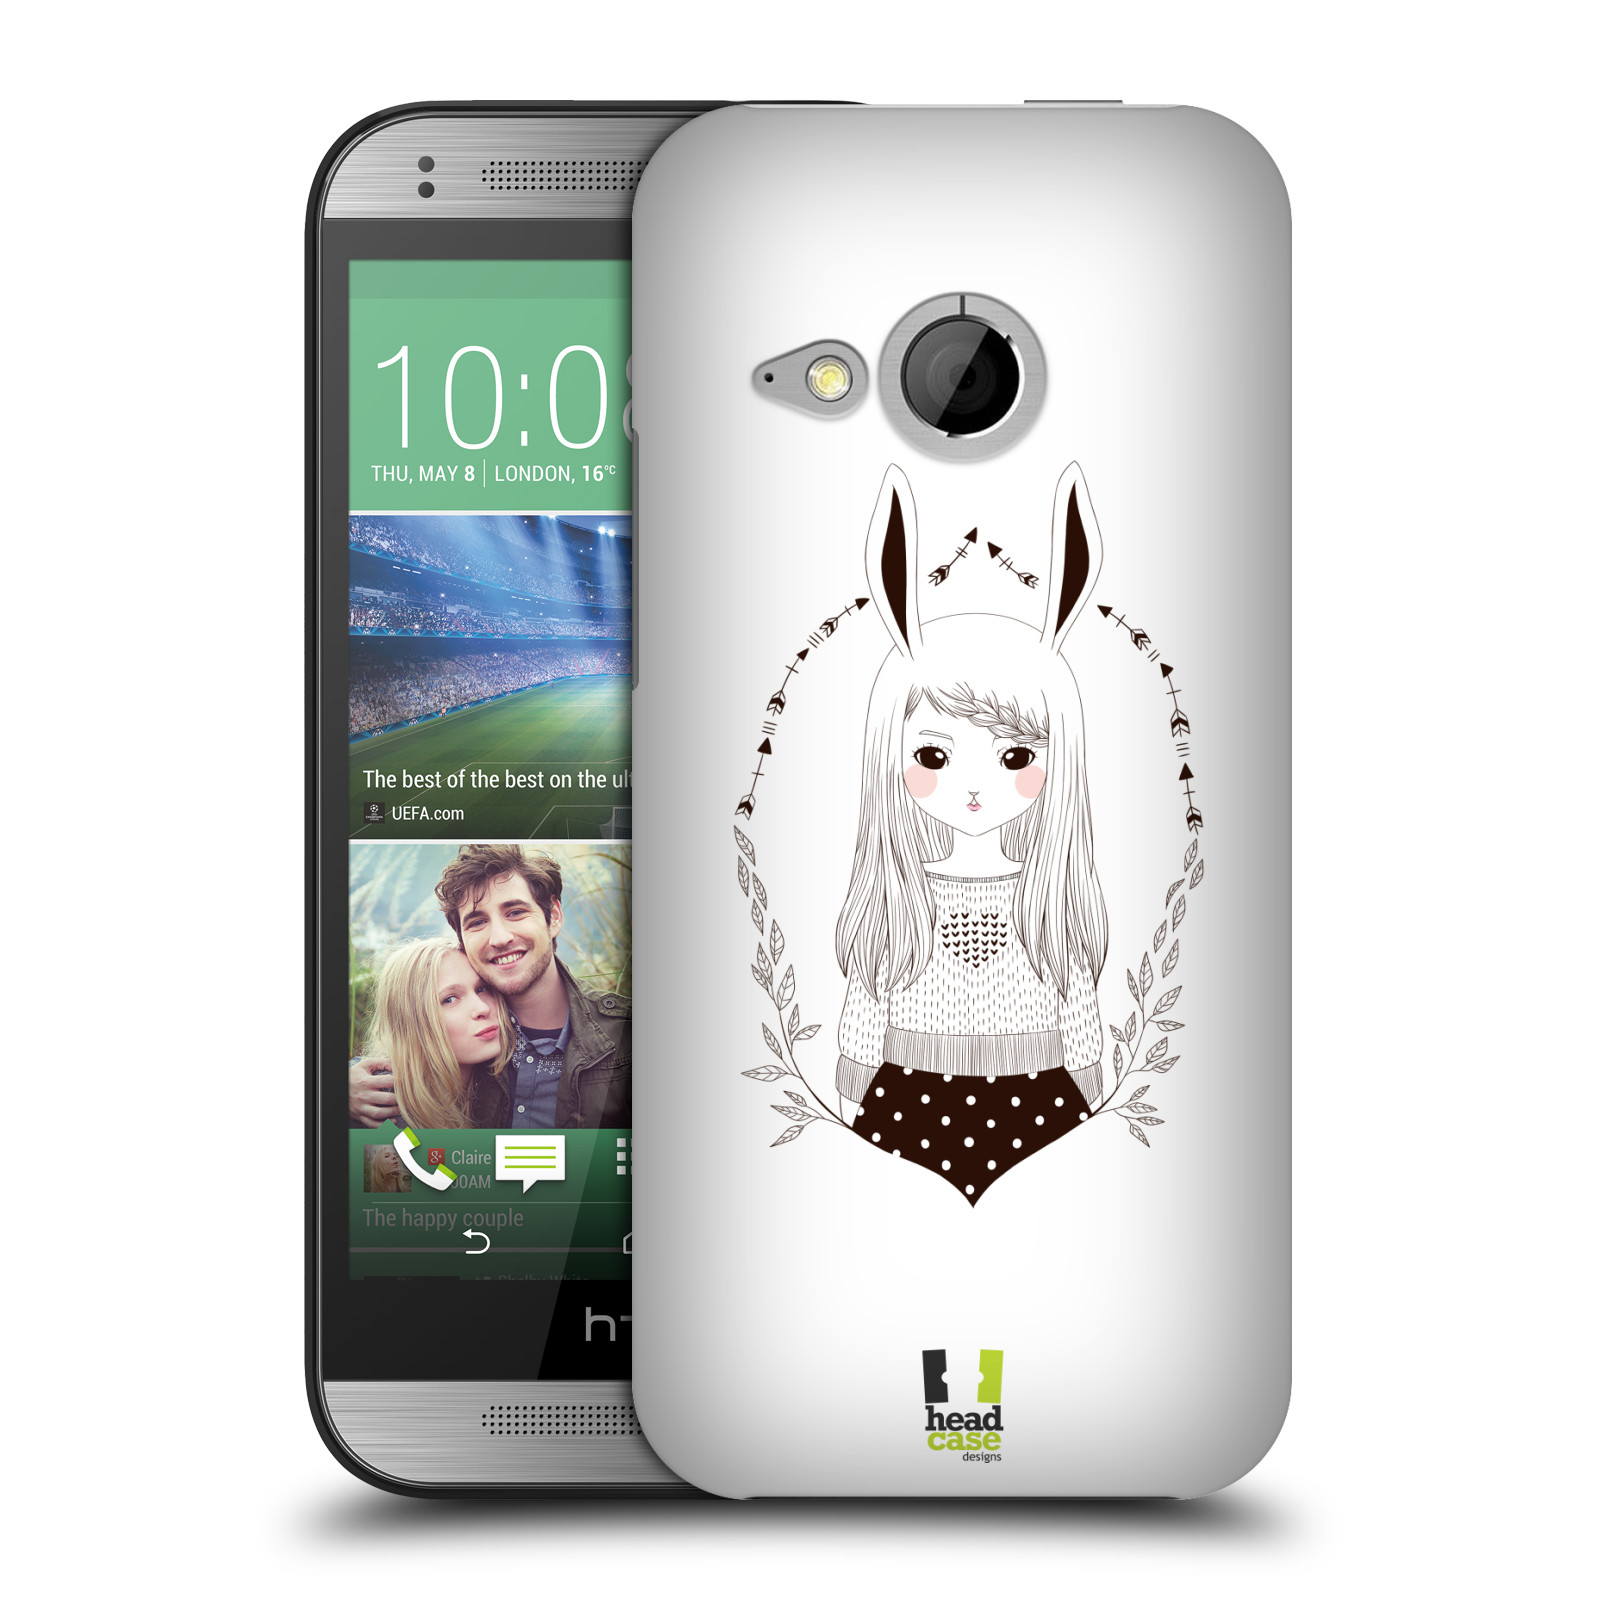 HEAD CASE DESIGNS MAIDENS OF THE WILD HARD BACK CASE FOR HTC ONE MINI 2